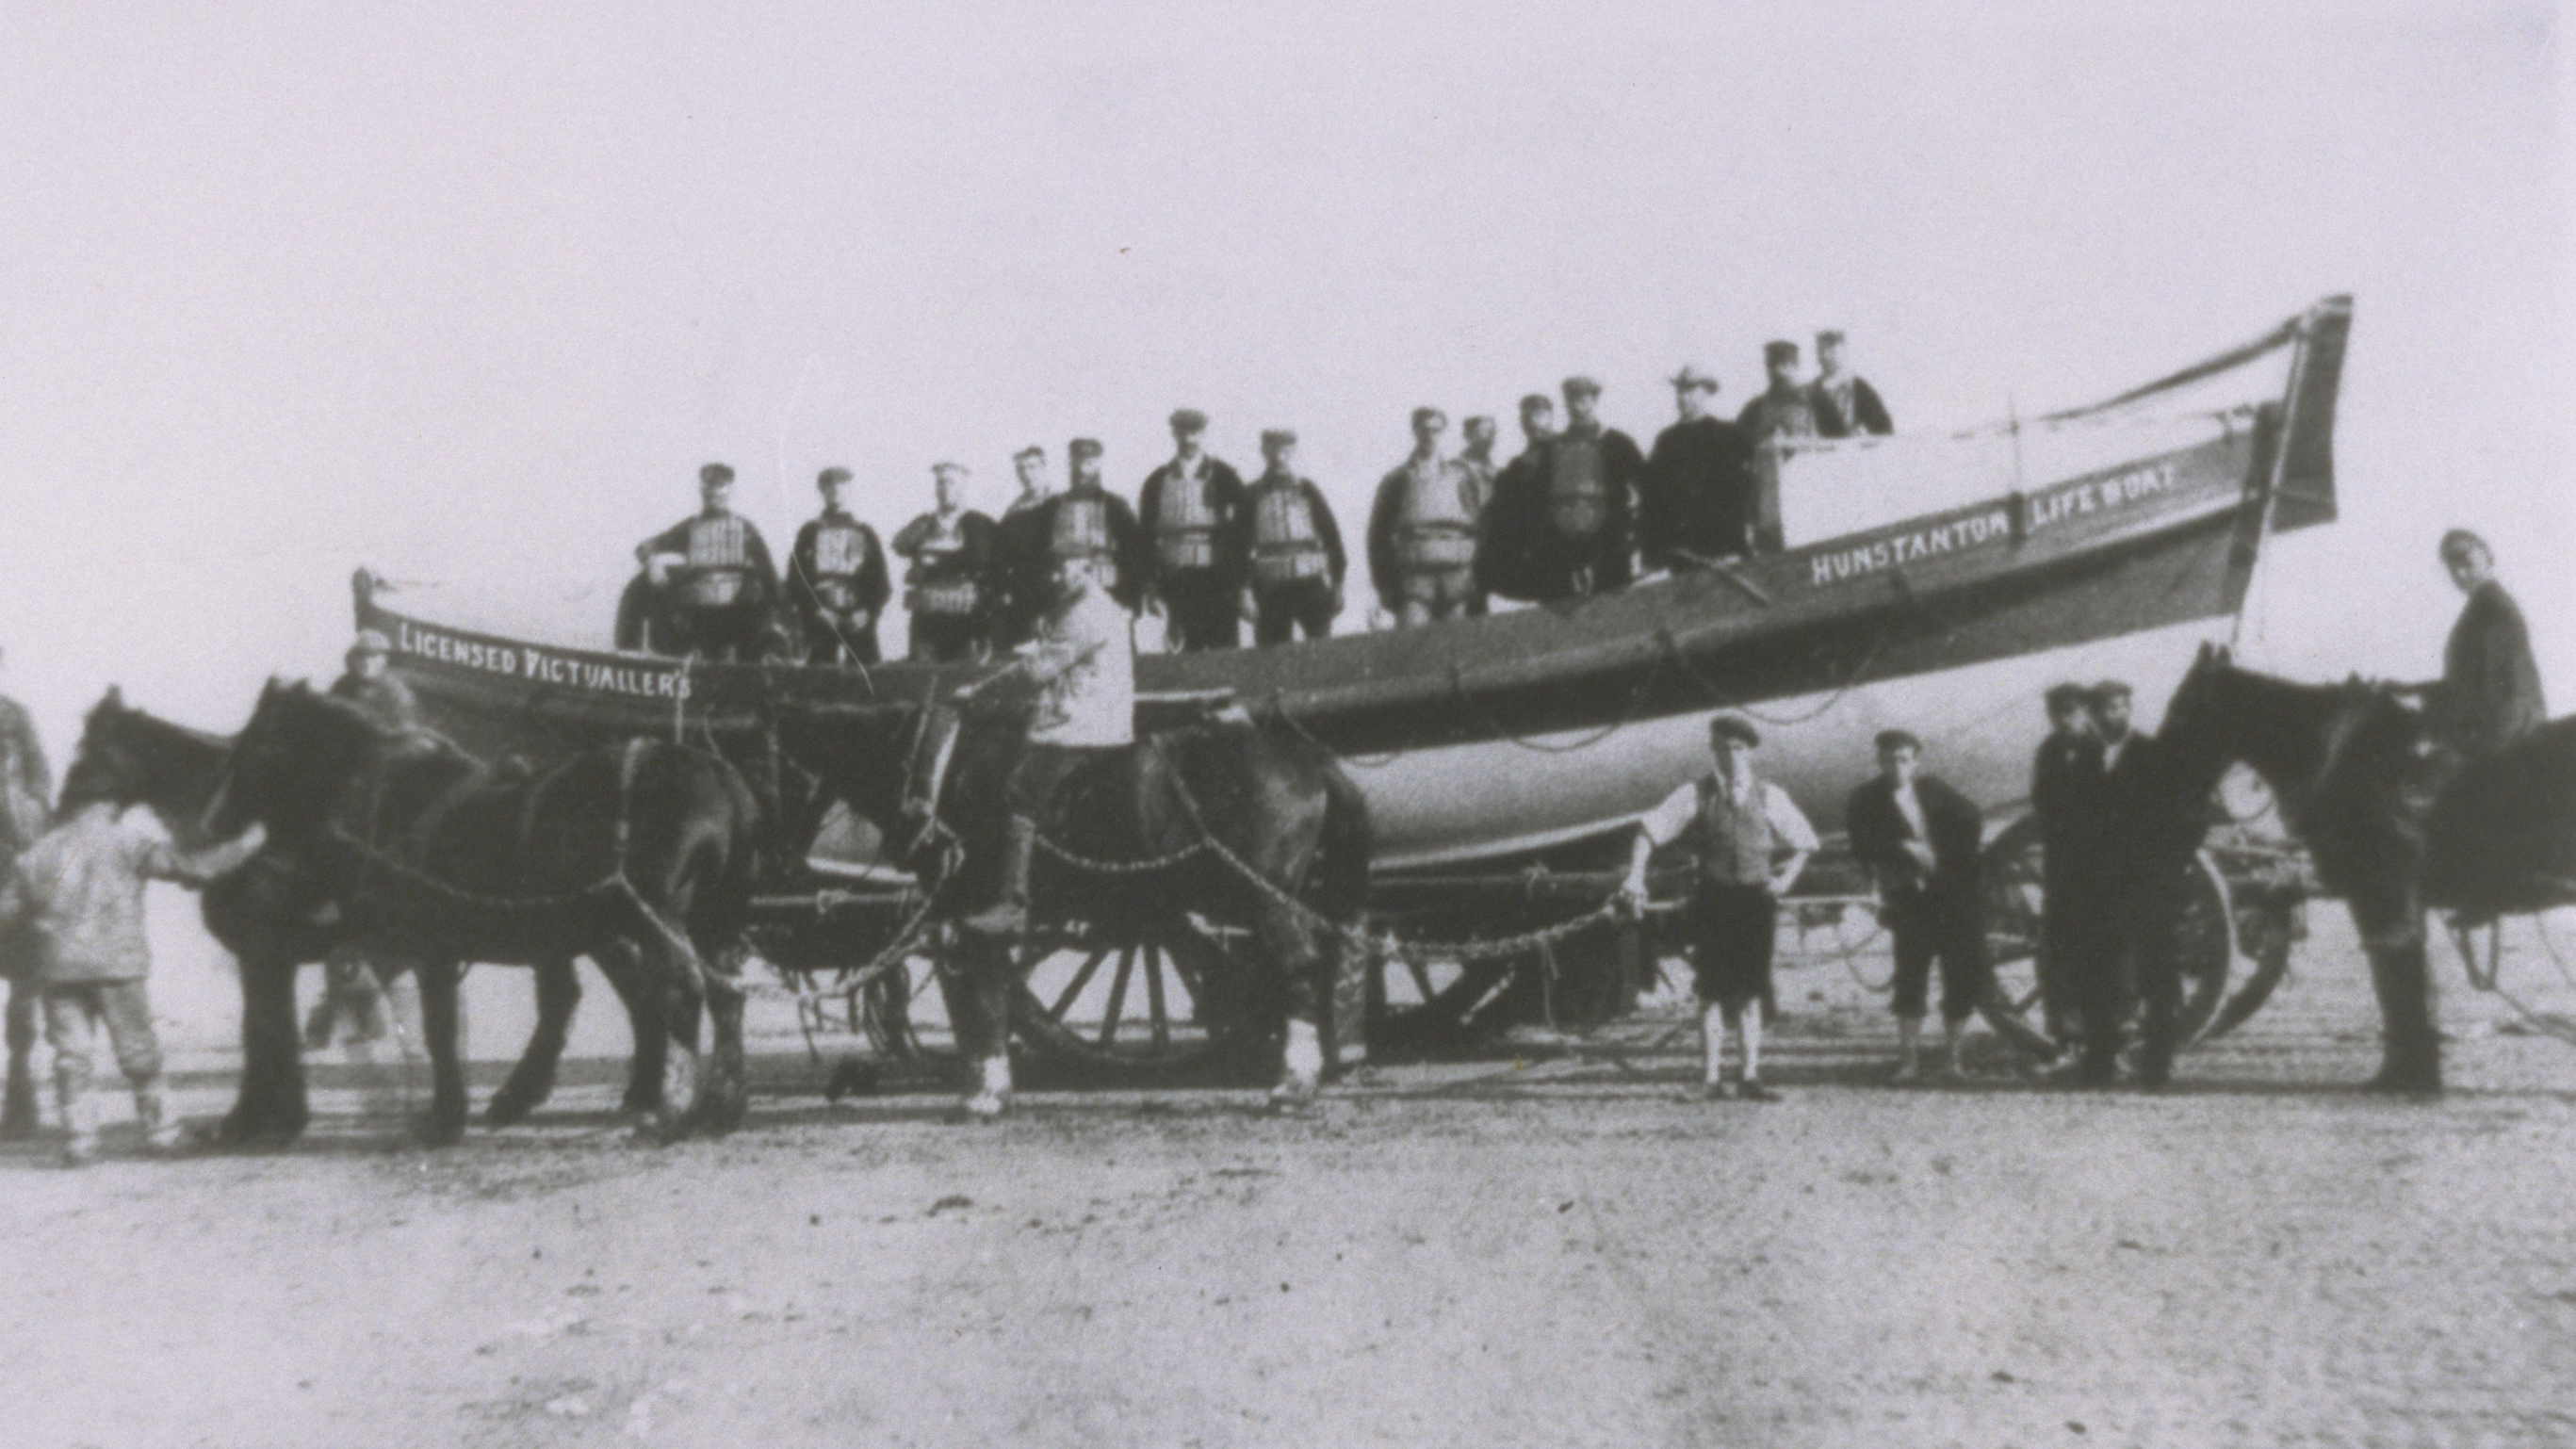 Hunstanton crew onboard their Self Righting class lifeboat, Licensed Victualler, as she sits on her horse-drawn carriage on the beach. Circa 1900-1931.